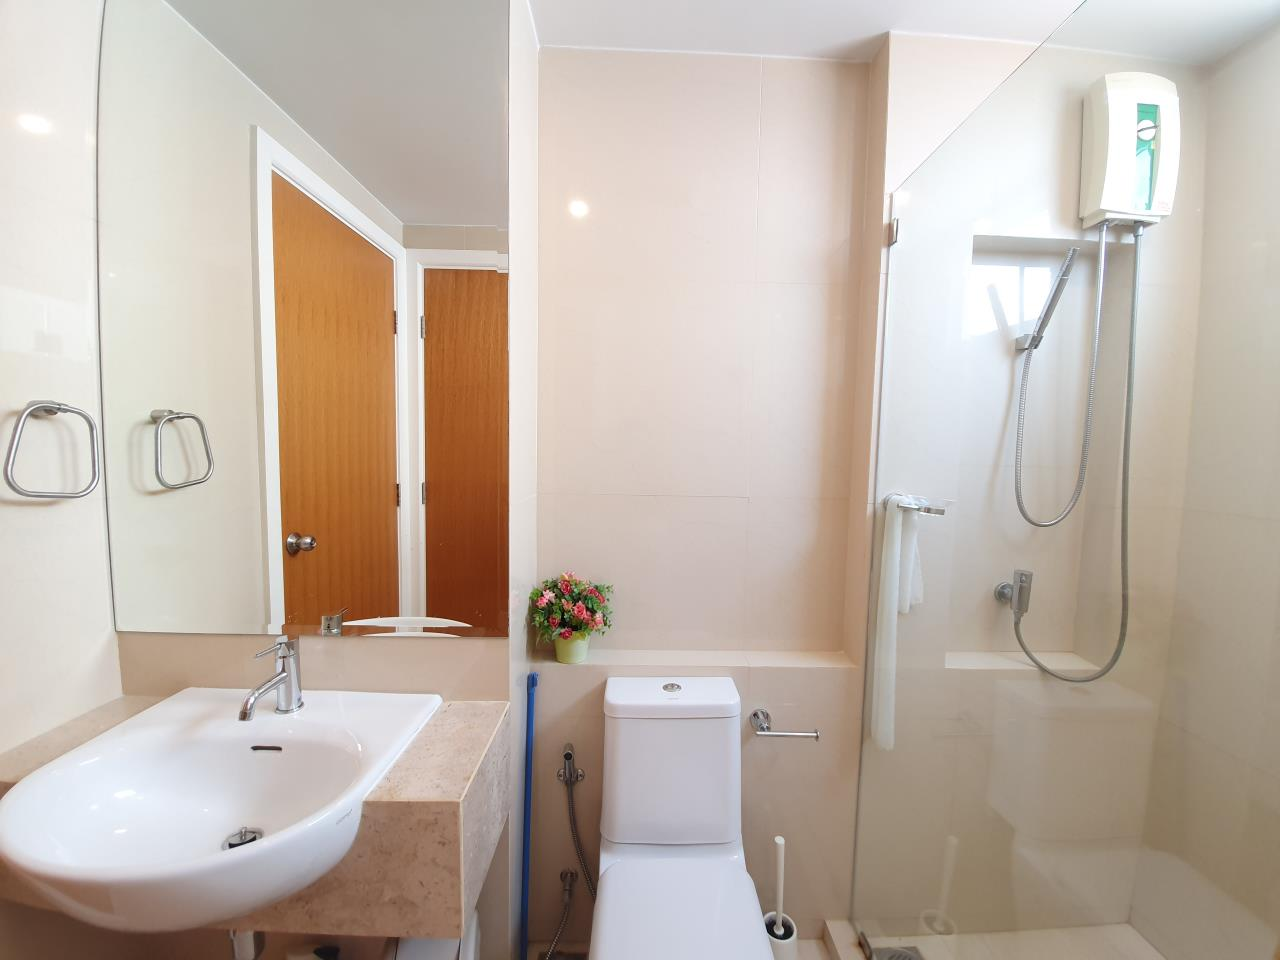 HOME - Real Estate Service Agency's The Breeze Hua Hin / 2 Beds (FOR RENT), เดอะ บรีซ หัวหิน / 2 ห้องนอน (ให้เช่า) T008 15